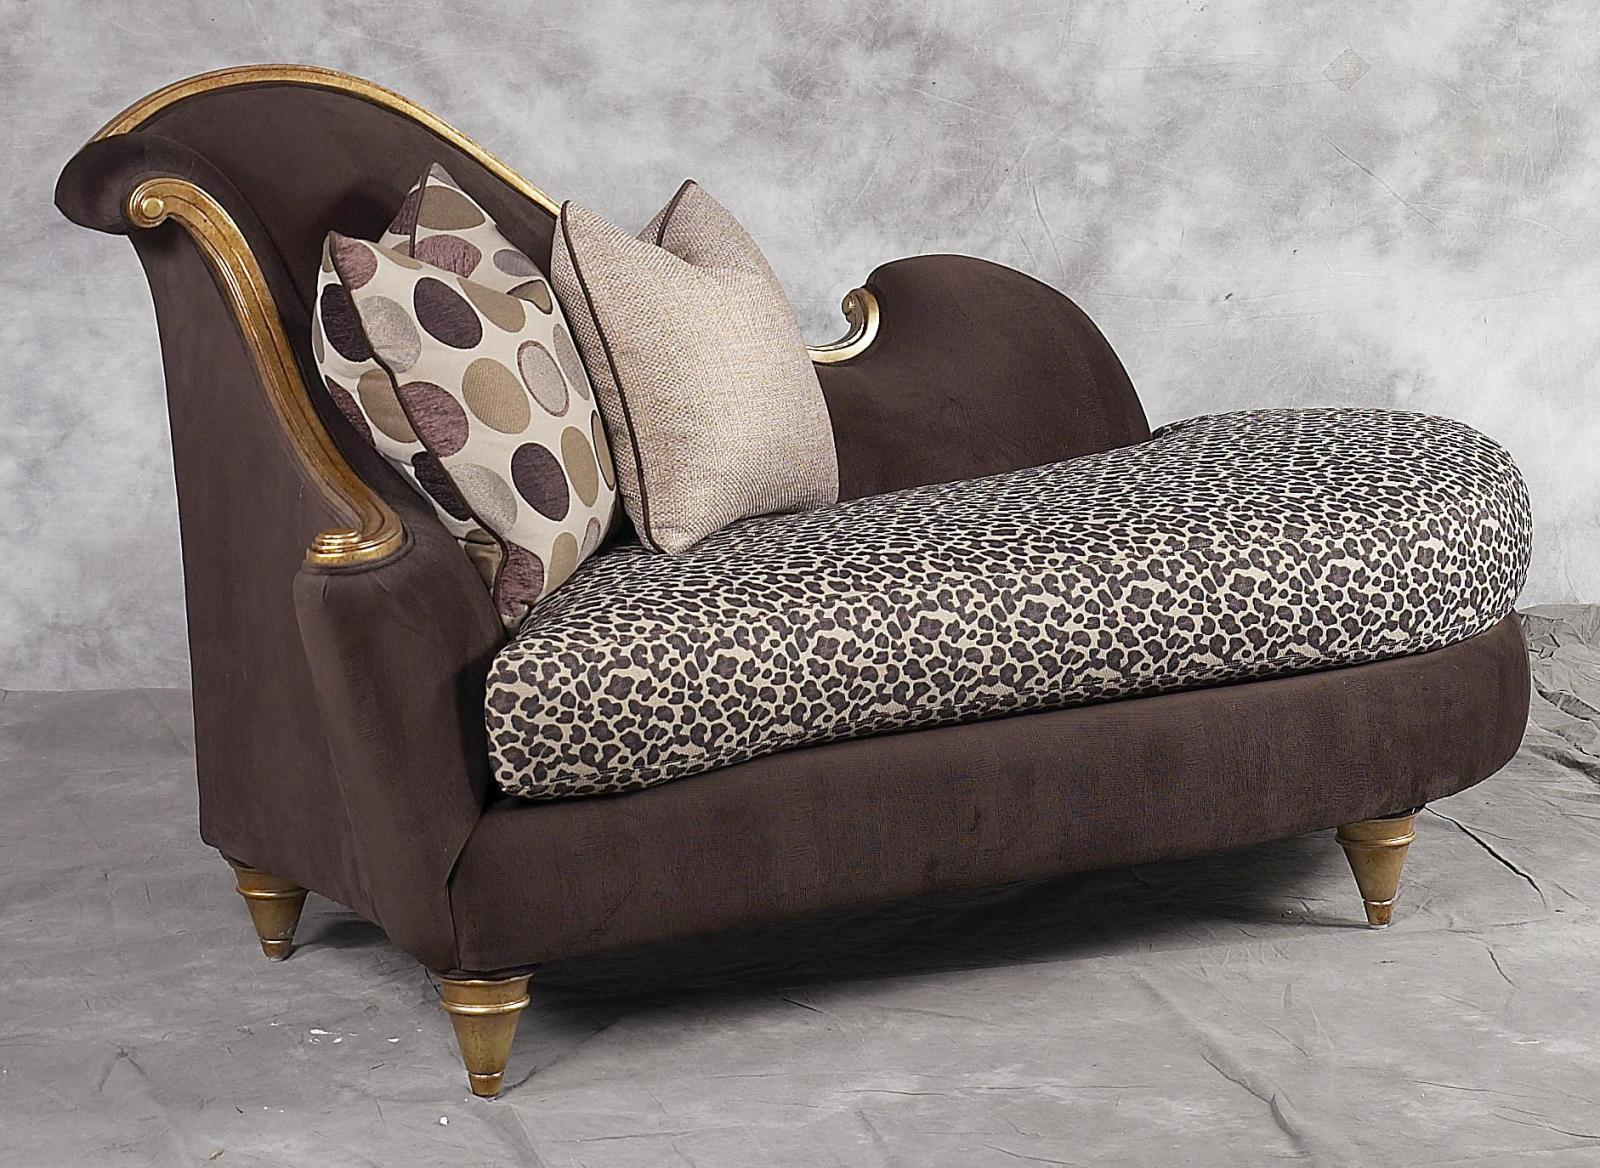 Bennetti Luxury Chenille Chocolate Chaise Lounge Gold Wood Montecito Chaise Lounge BR  Classic Traditional